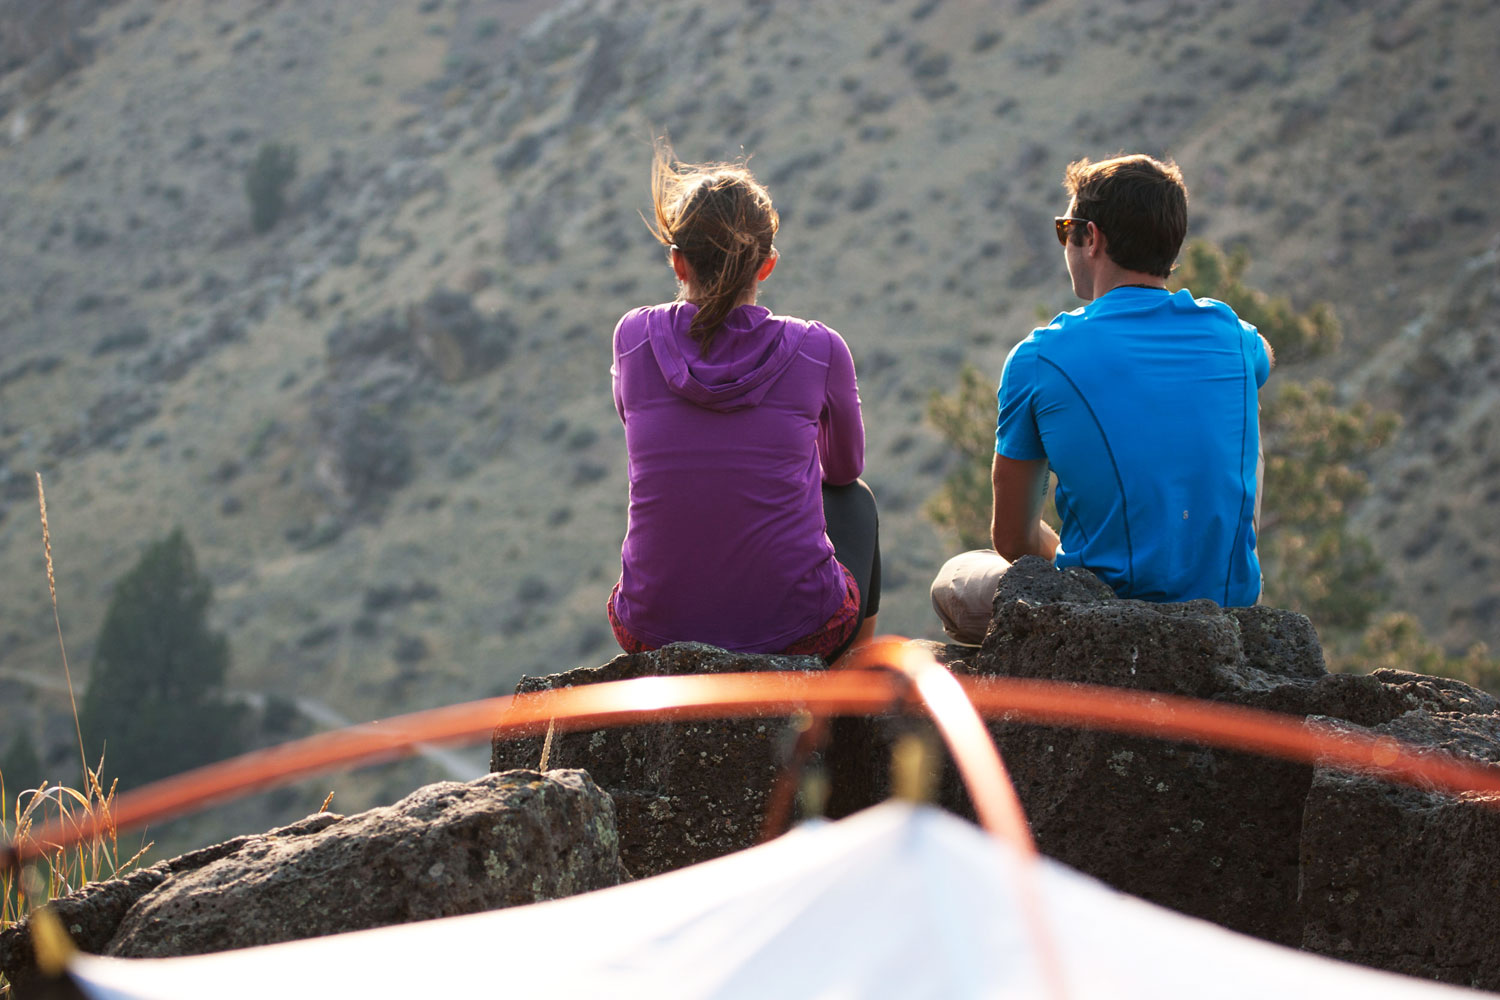 campers on the Bivy Rim overlooking the Crooked River gorge below